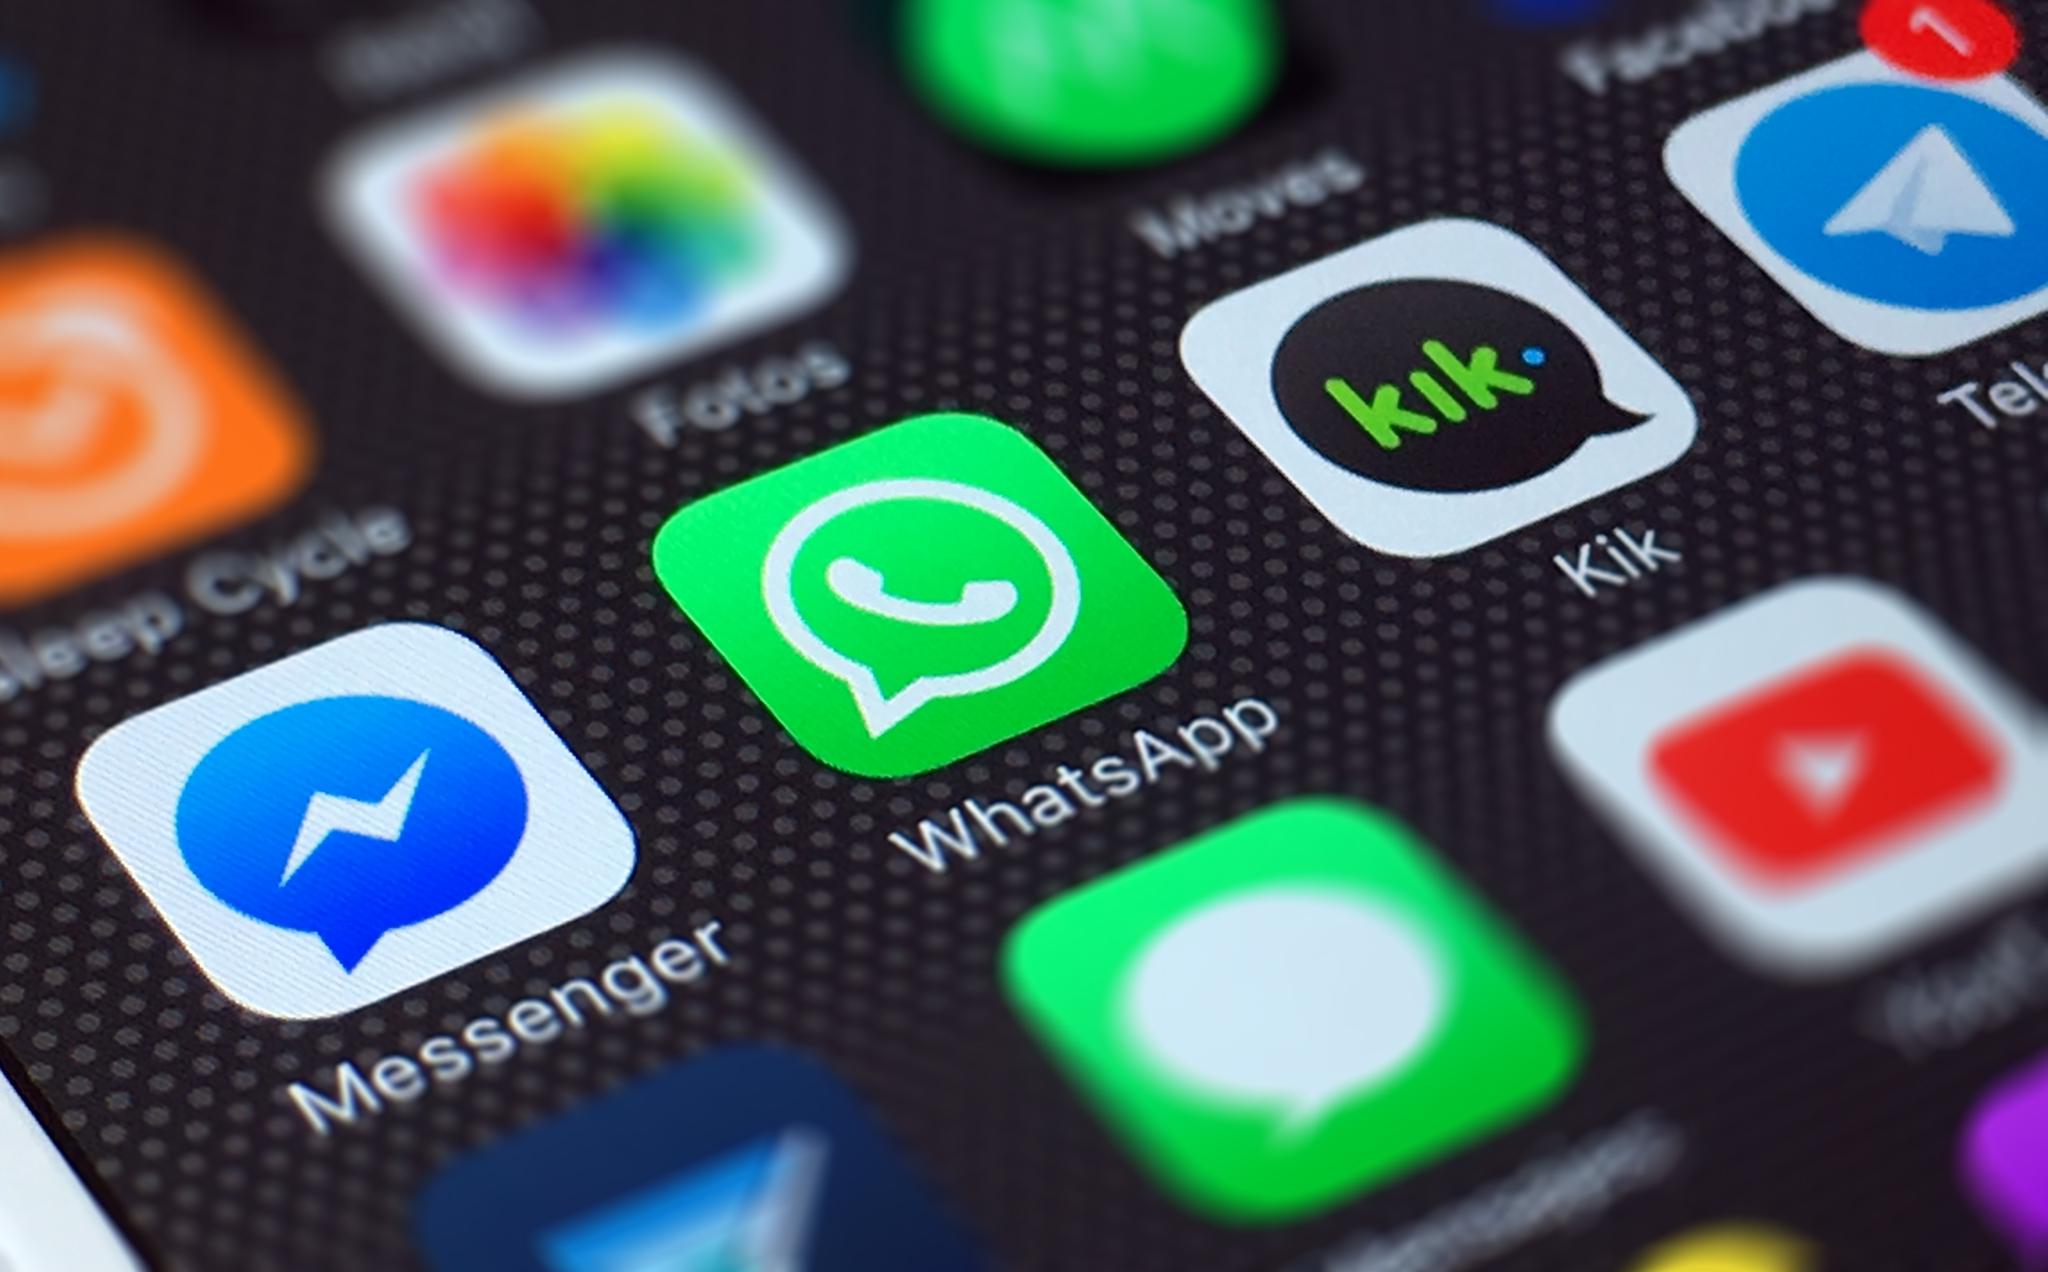 whatsapp to advise users if they receive a dangerous file